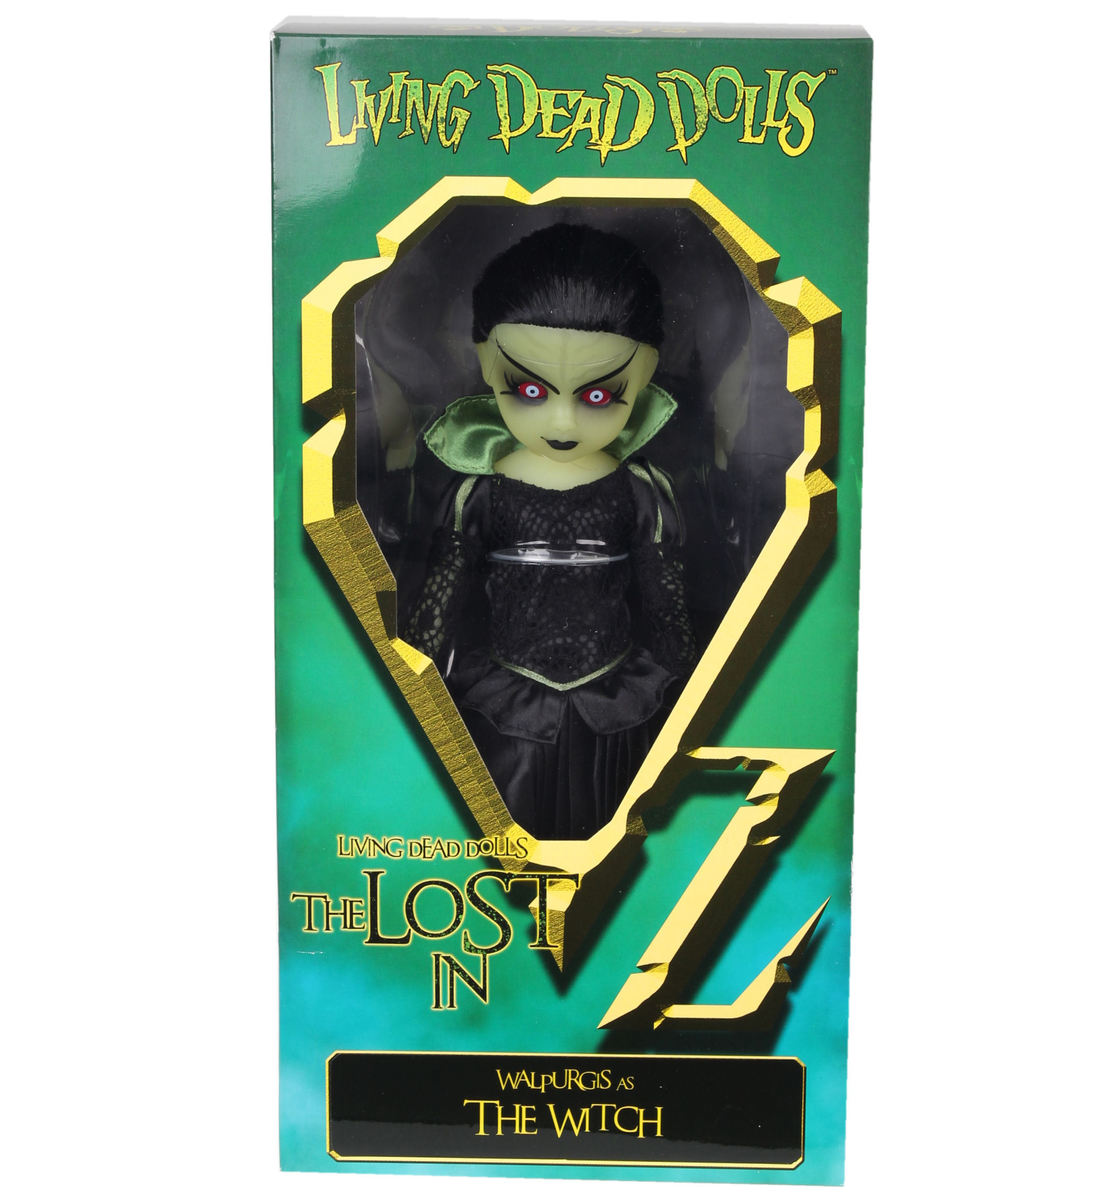 panenka LIVING DEAD DOLLS - Walpurgis as The Witch - MEZ94510-5